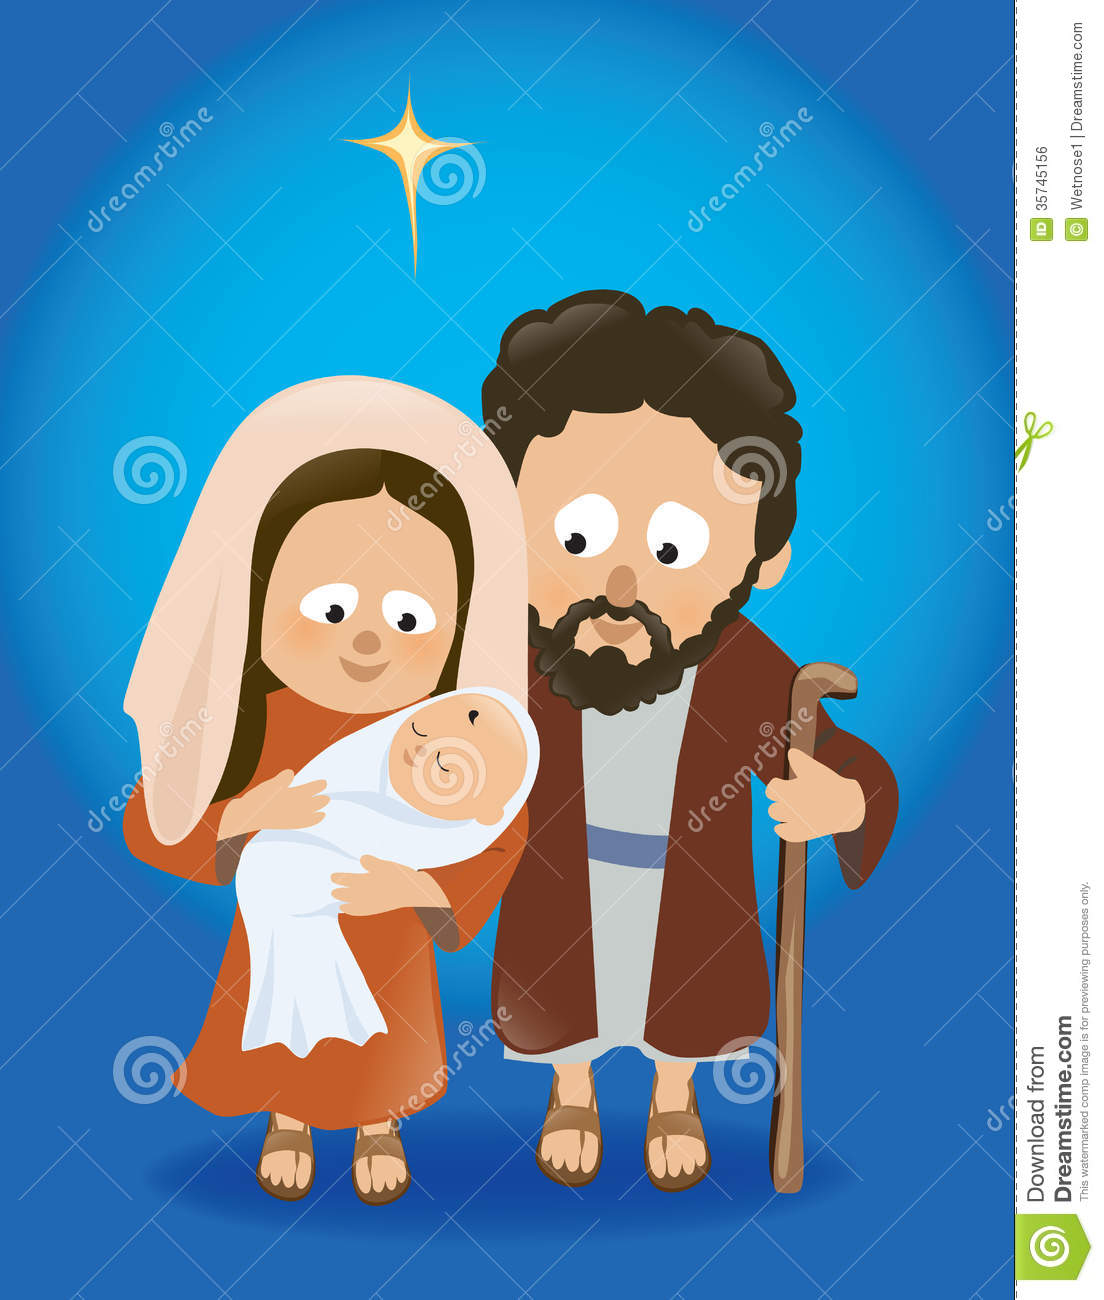 Baby jesus with mary and joseph royalty free stock image image